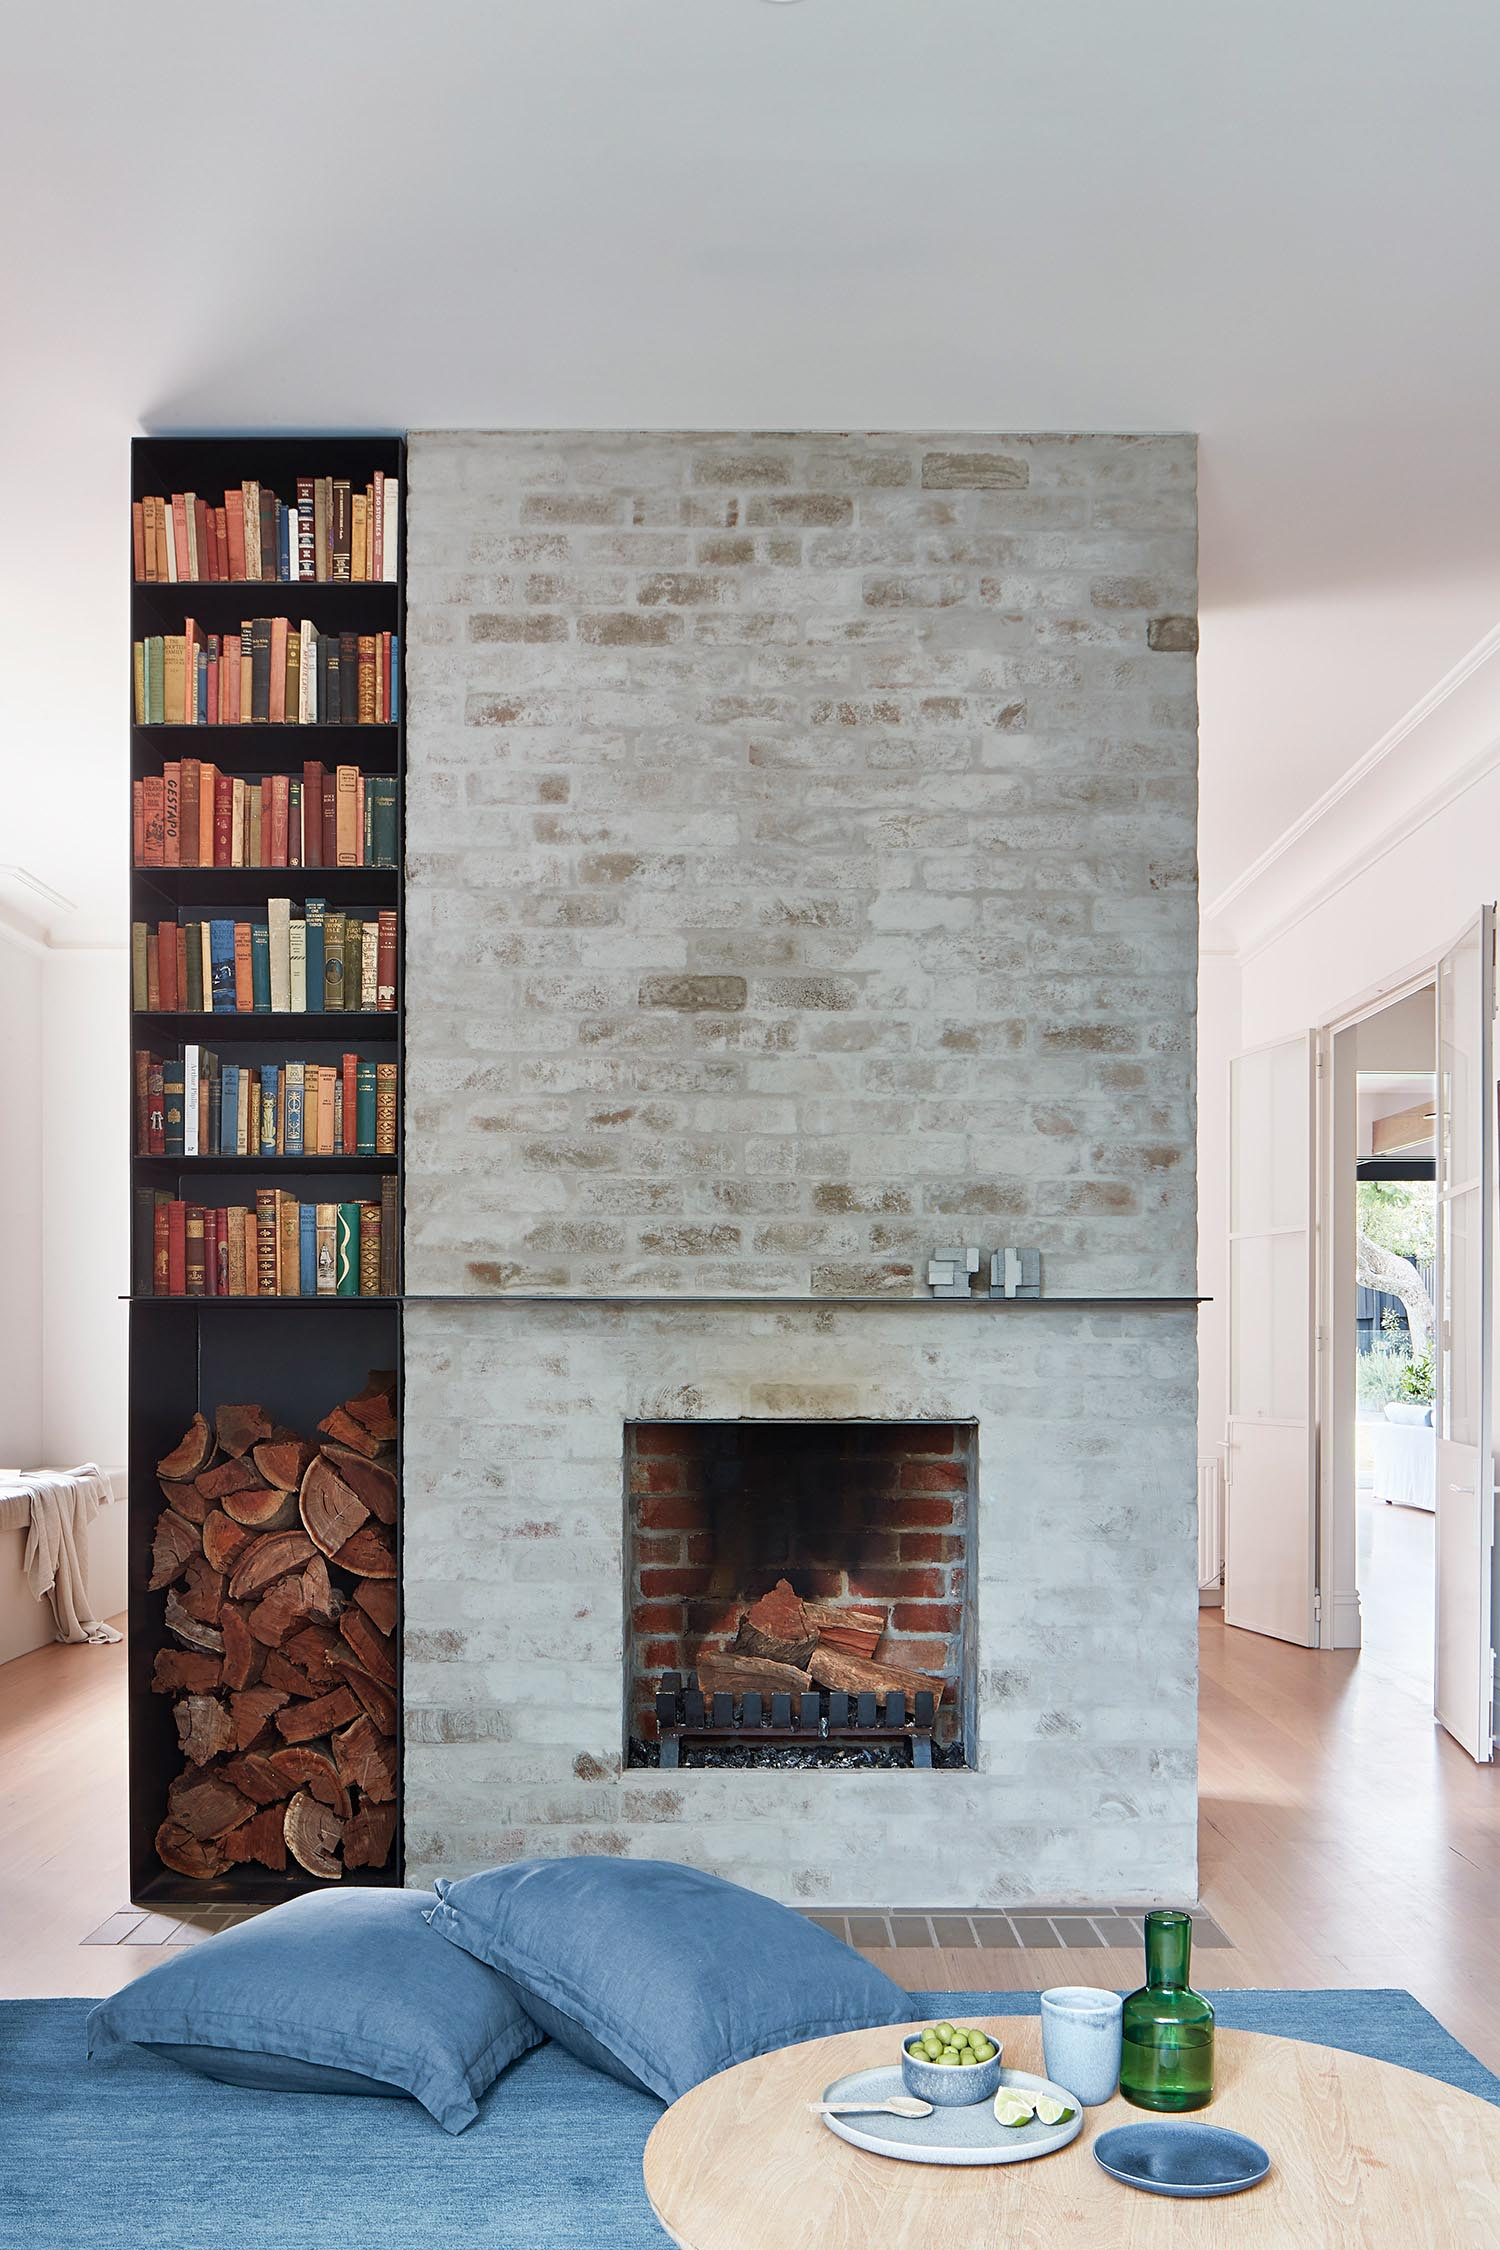 A brick fireplace with firewood storage and a bookshelf.